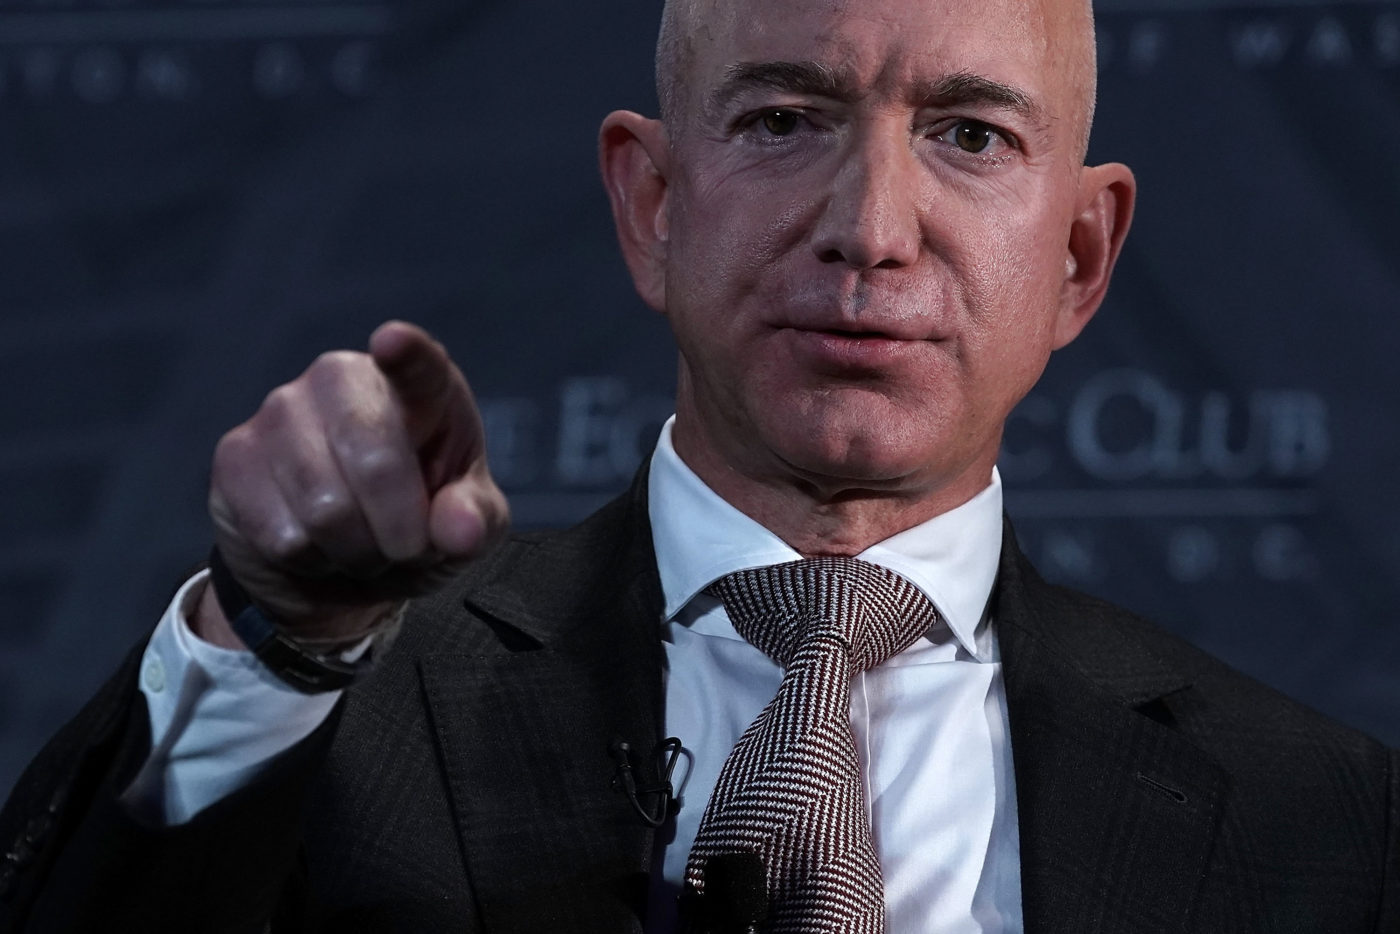 Details emerge on Amazon's HQ2 drama: A story of envy and Elon